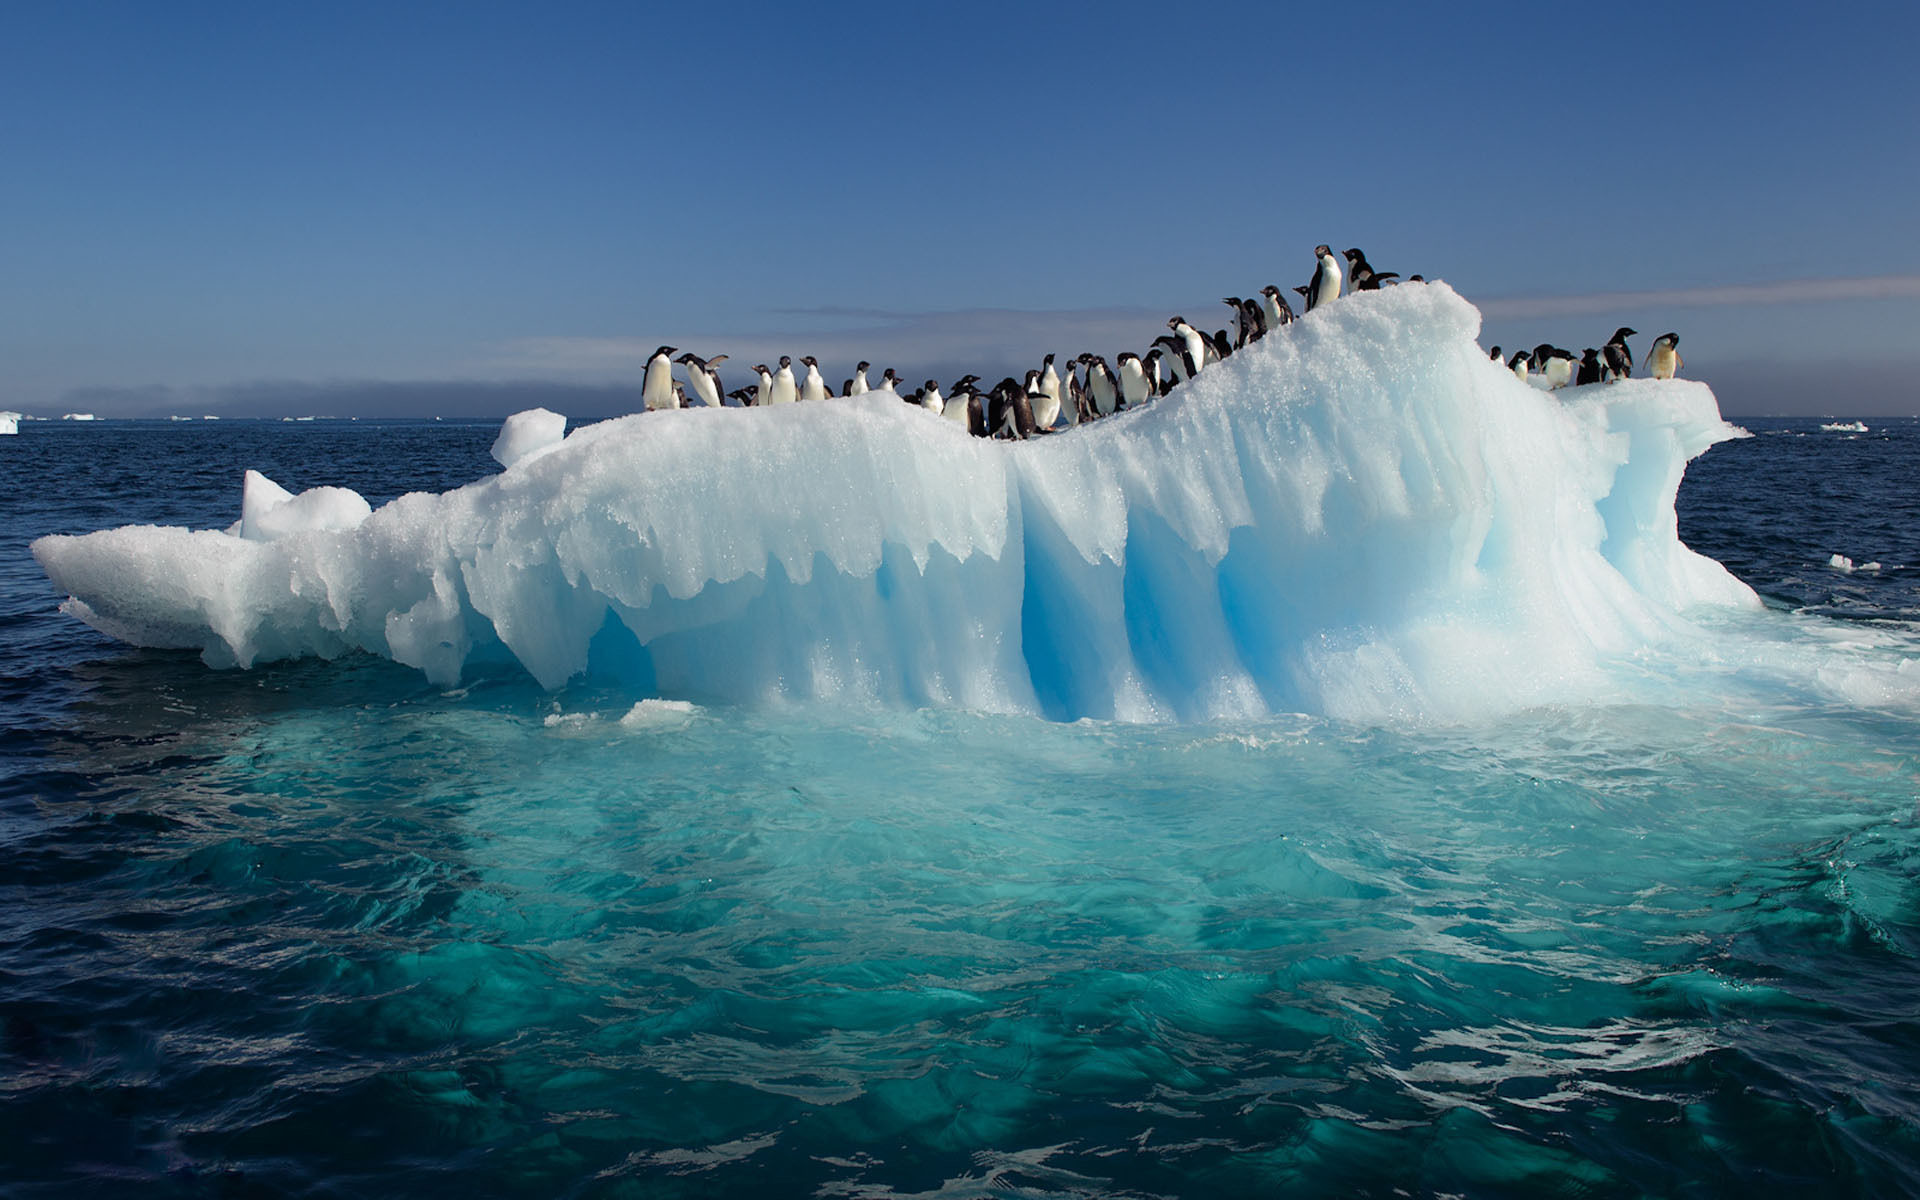 1920x1200 HD Awesome View Of Nature Penguins On Ice In Antarctica Ocean Best Desktop  High Resolution Wallpapers Of Ocean Ice